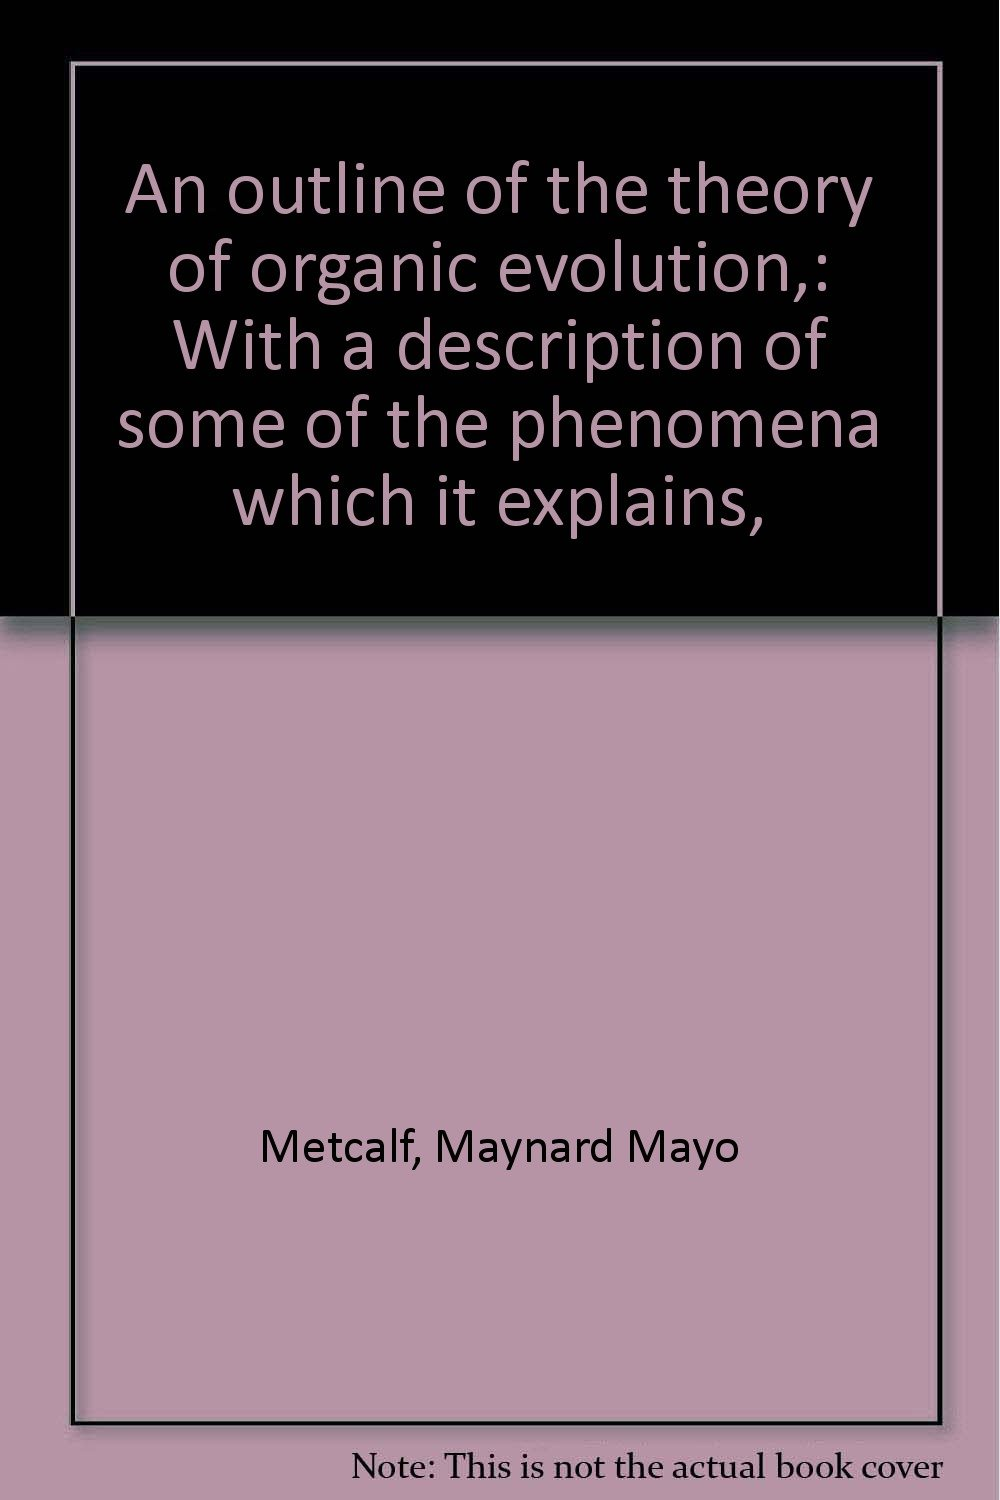 An outline of the theory of organic evolution,: With a description of some of the phenomena which it explains,